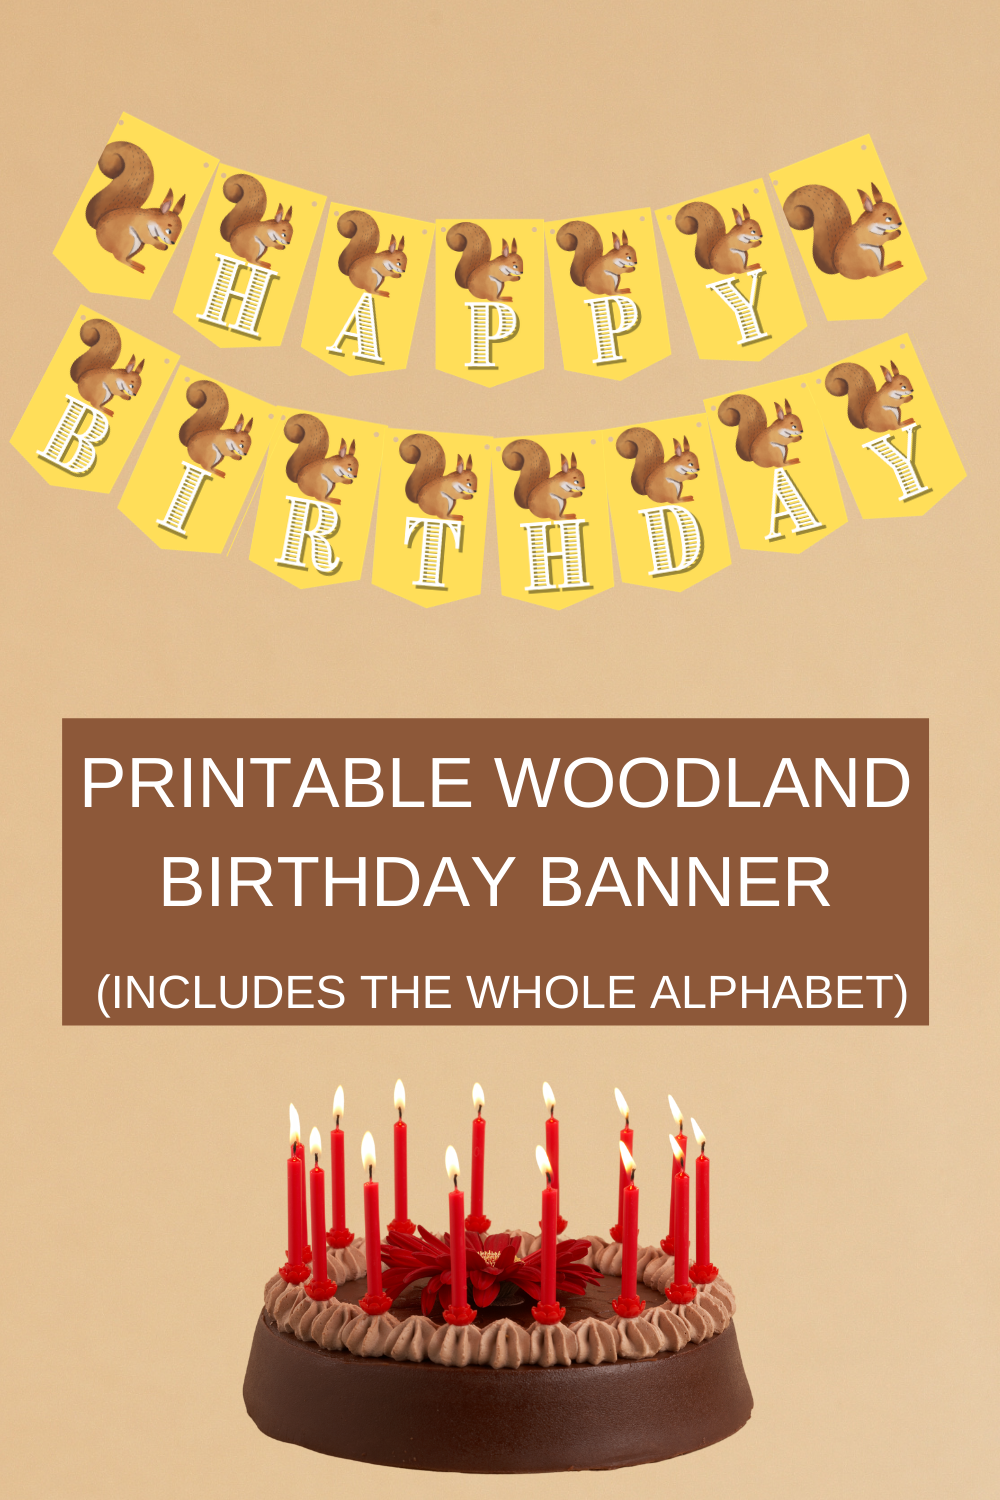 quick and easy birthday party decorations for a woodland birthday party